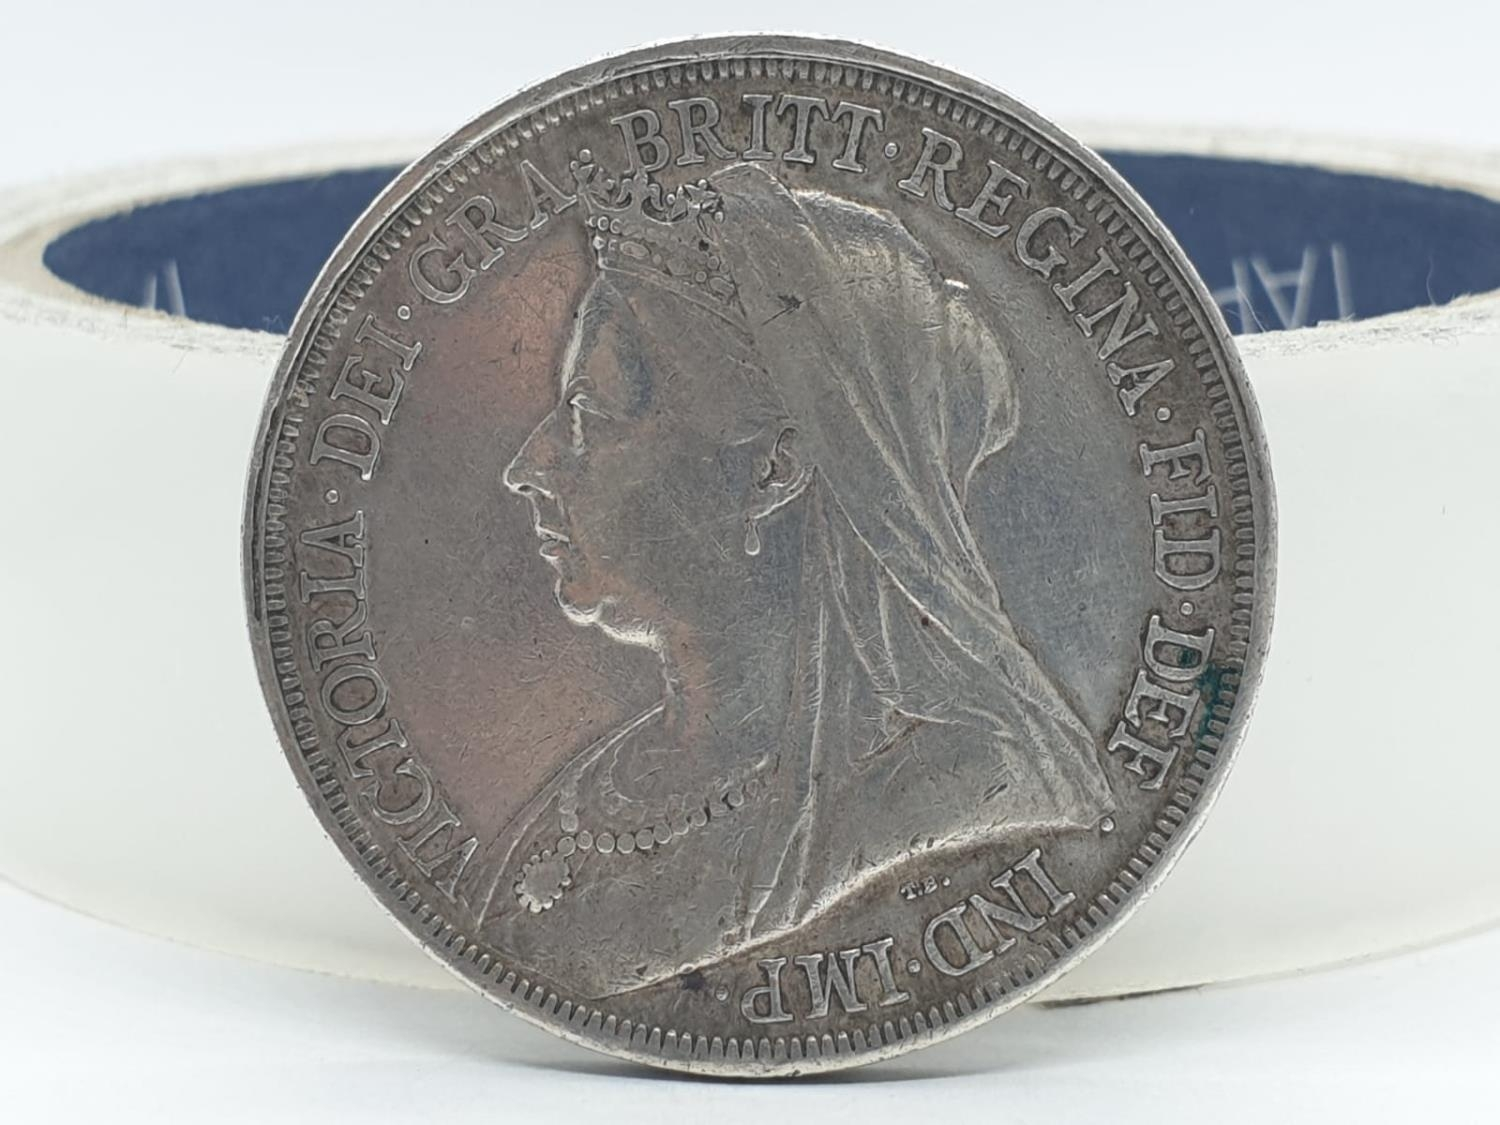 1893 Victorian silver crown - Image 2 of 5